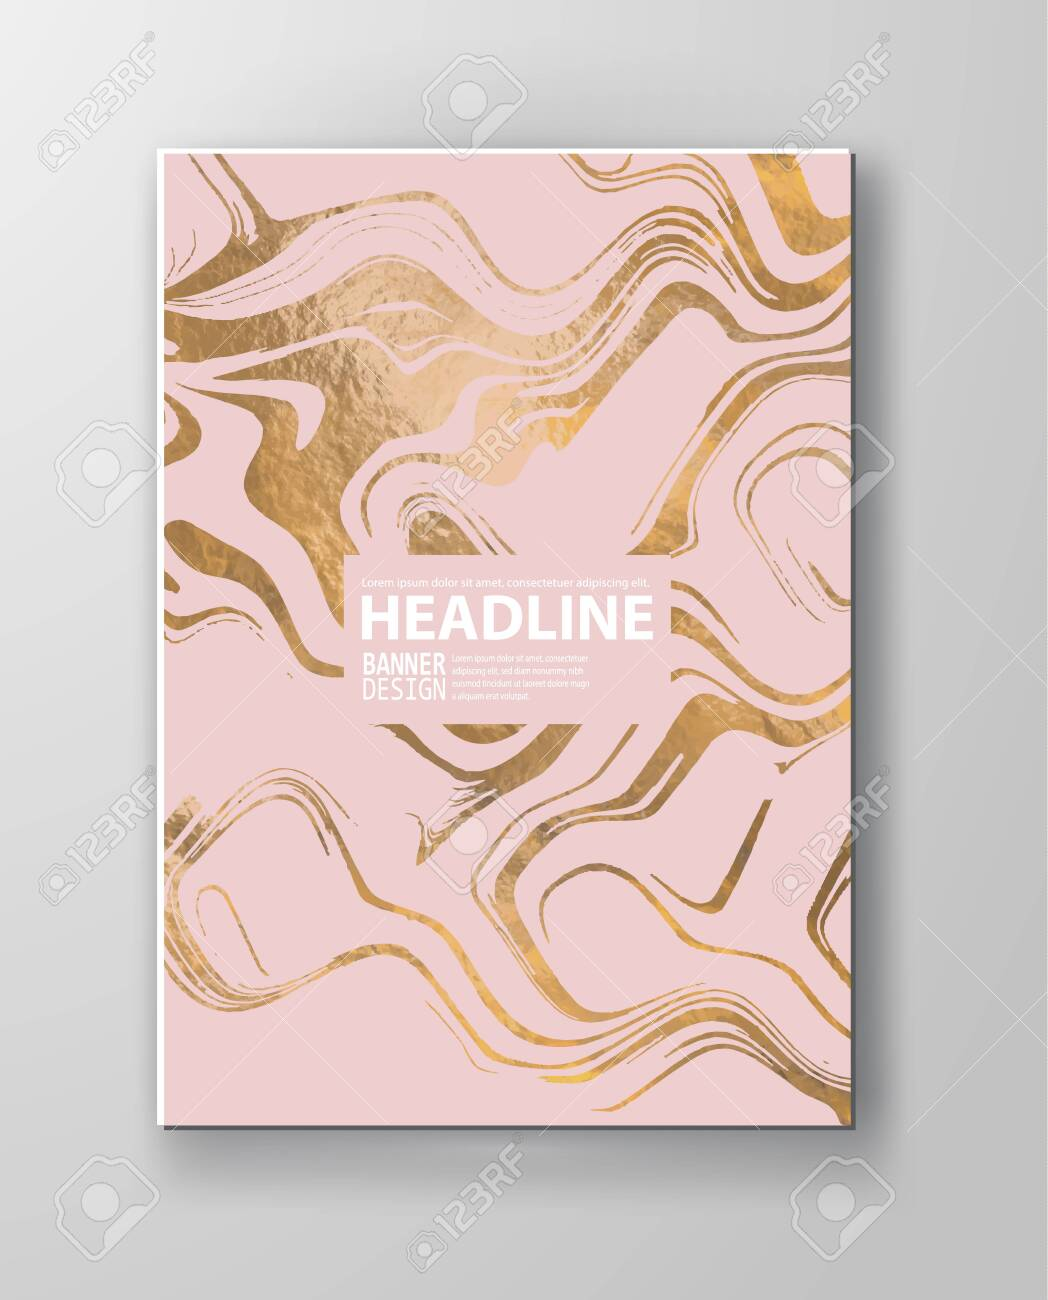 Gold And Pink Marbling Texture Design For Poster Brochure Invitation Royalty Free Cliparts Vectors And Stock Illustration Image 122489627